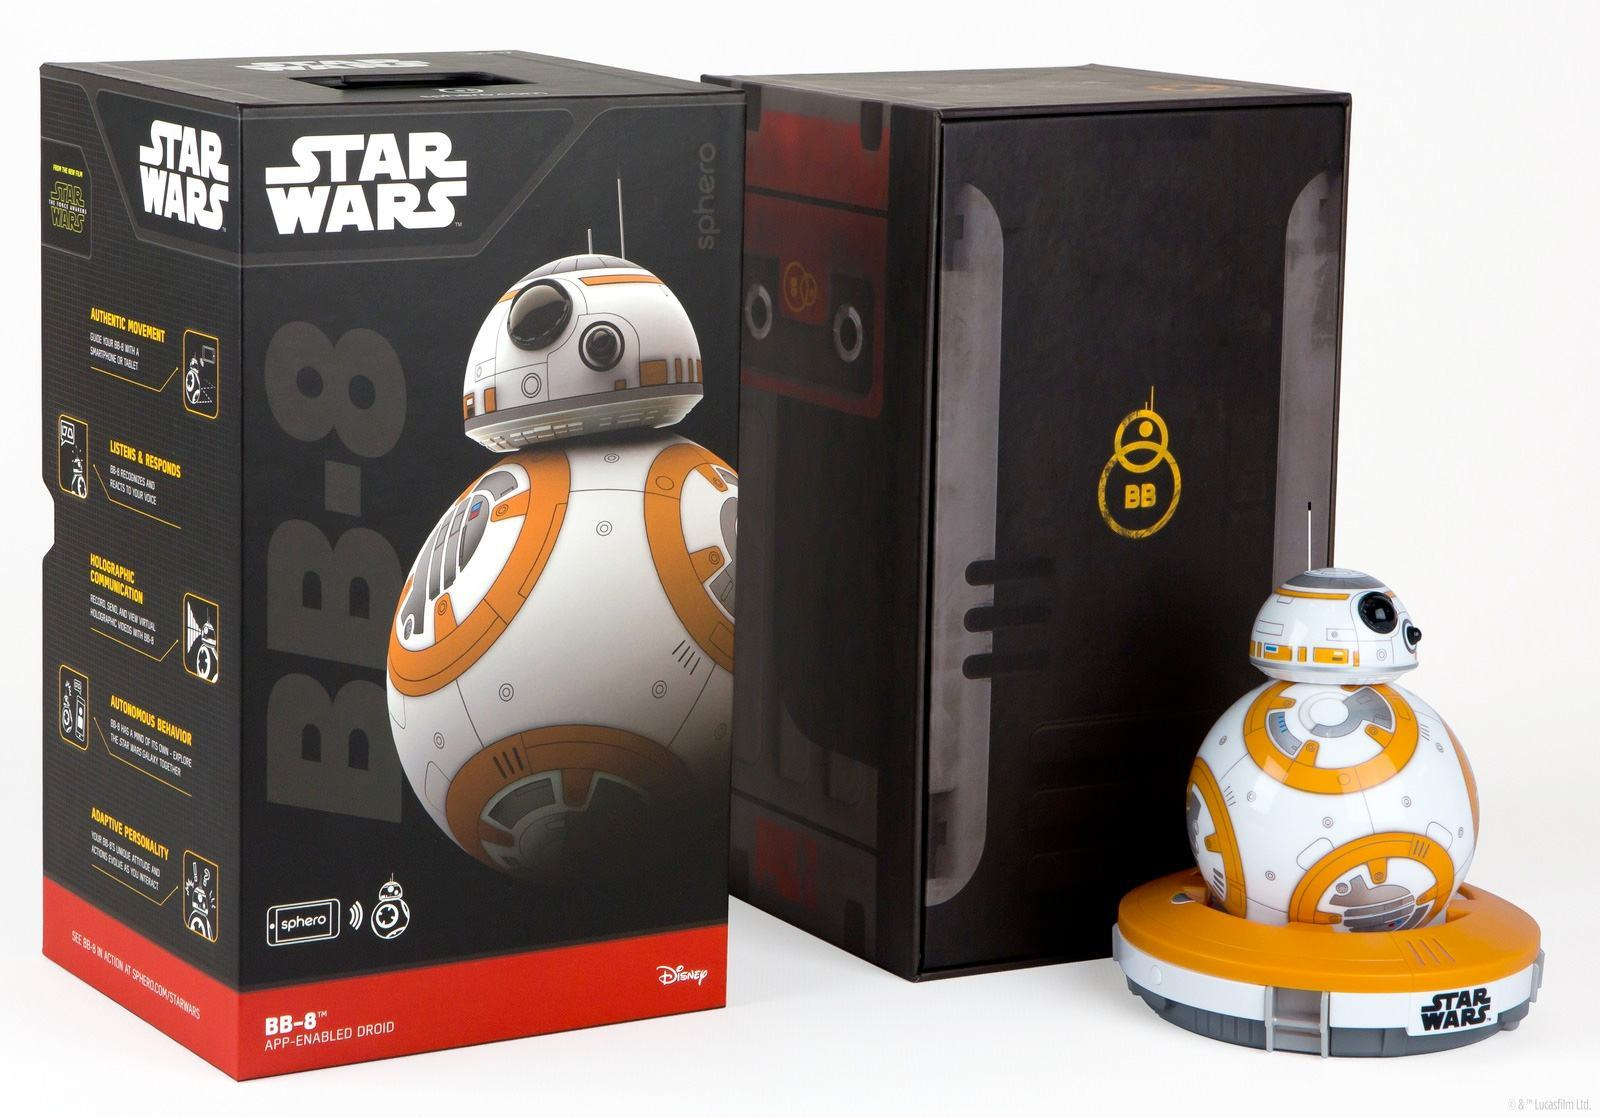 BB-8-App-Enabled-Droid-Sphero-Star-Wars-10